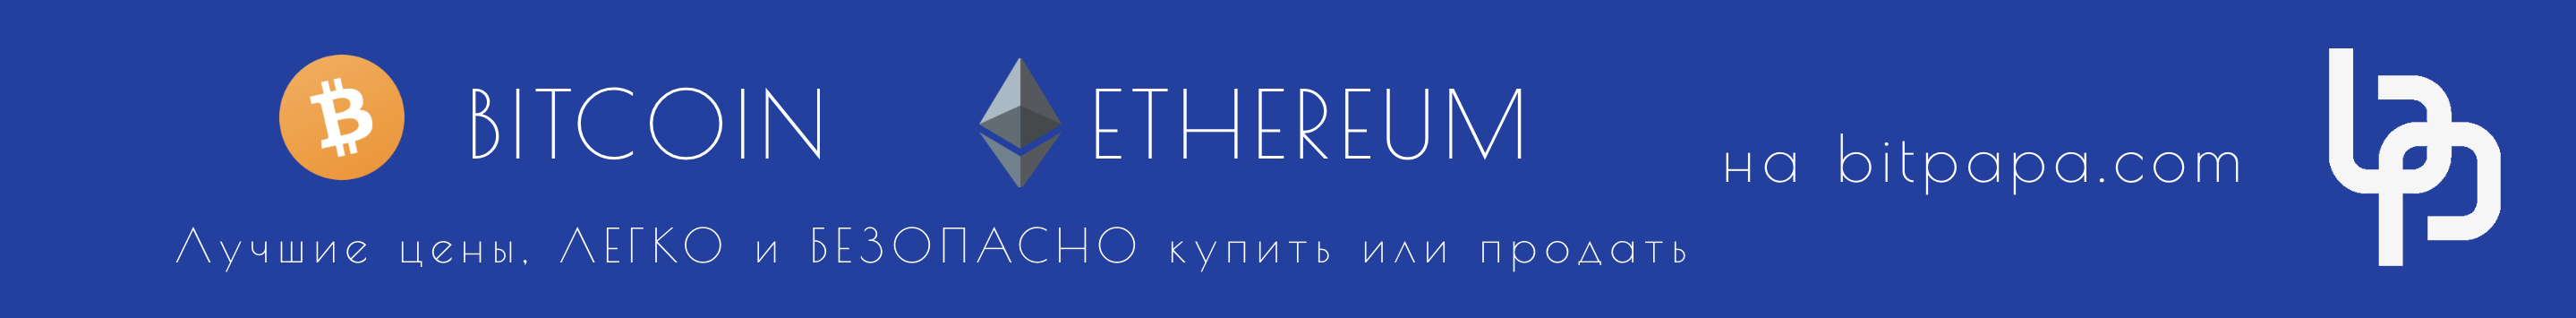 купить или продать биткоин